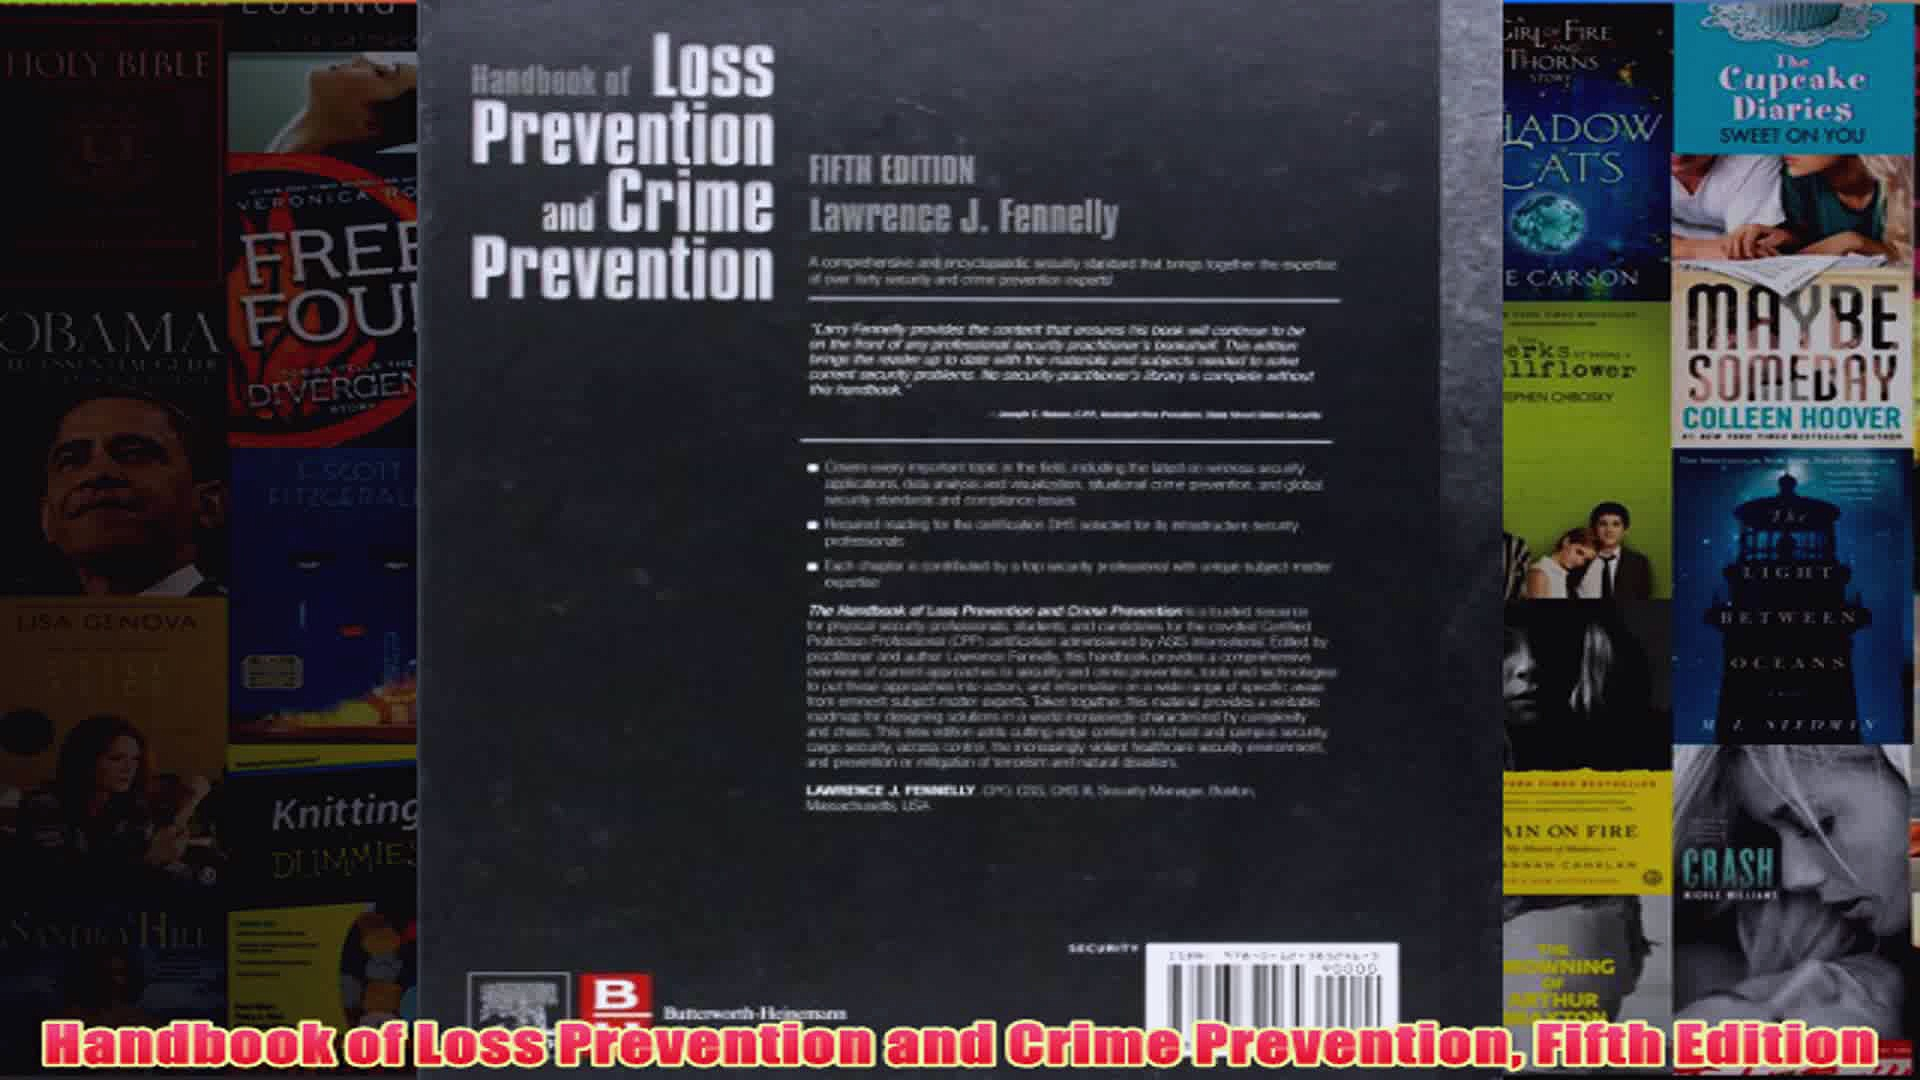 Handbook of Loss Prevention and Crime Prevention Fifth Edition